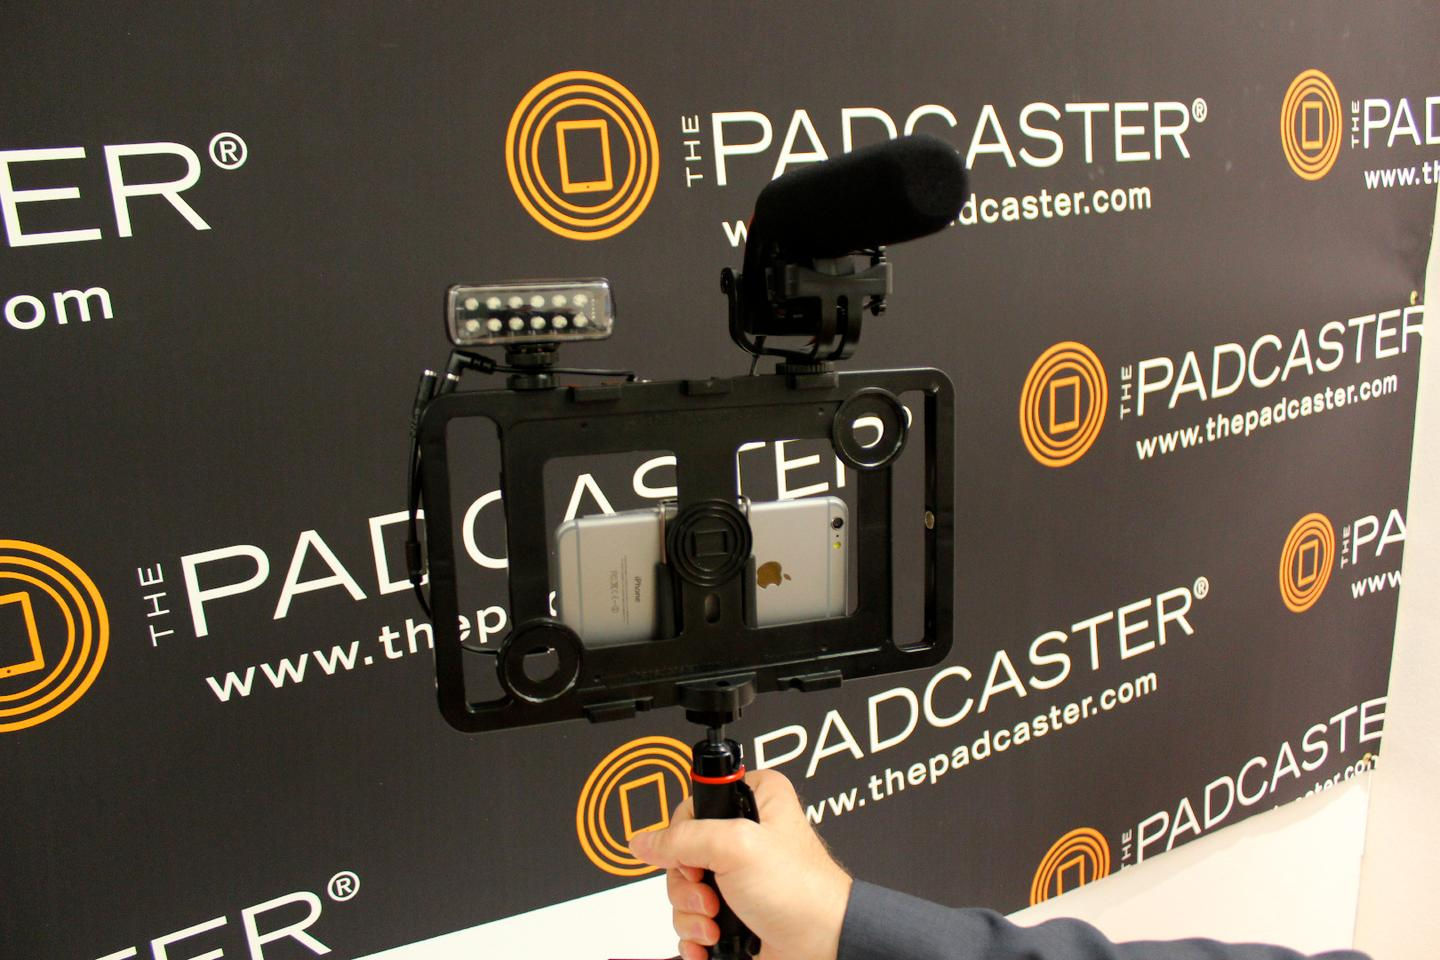 The new Padcaster, still awaiting a name